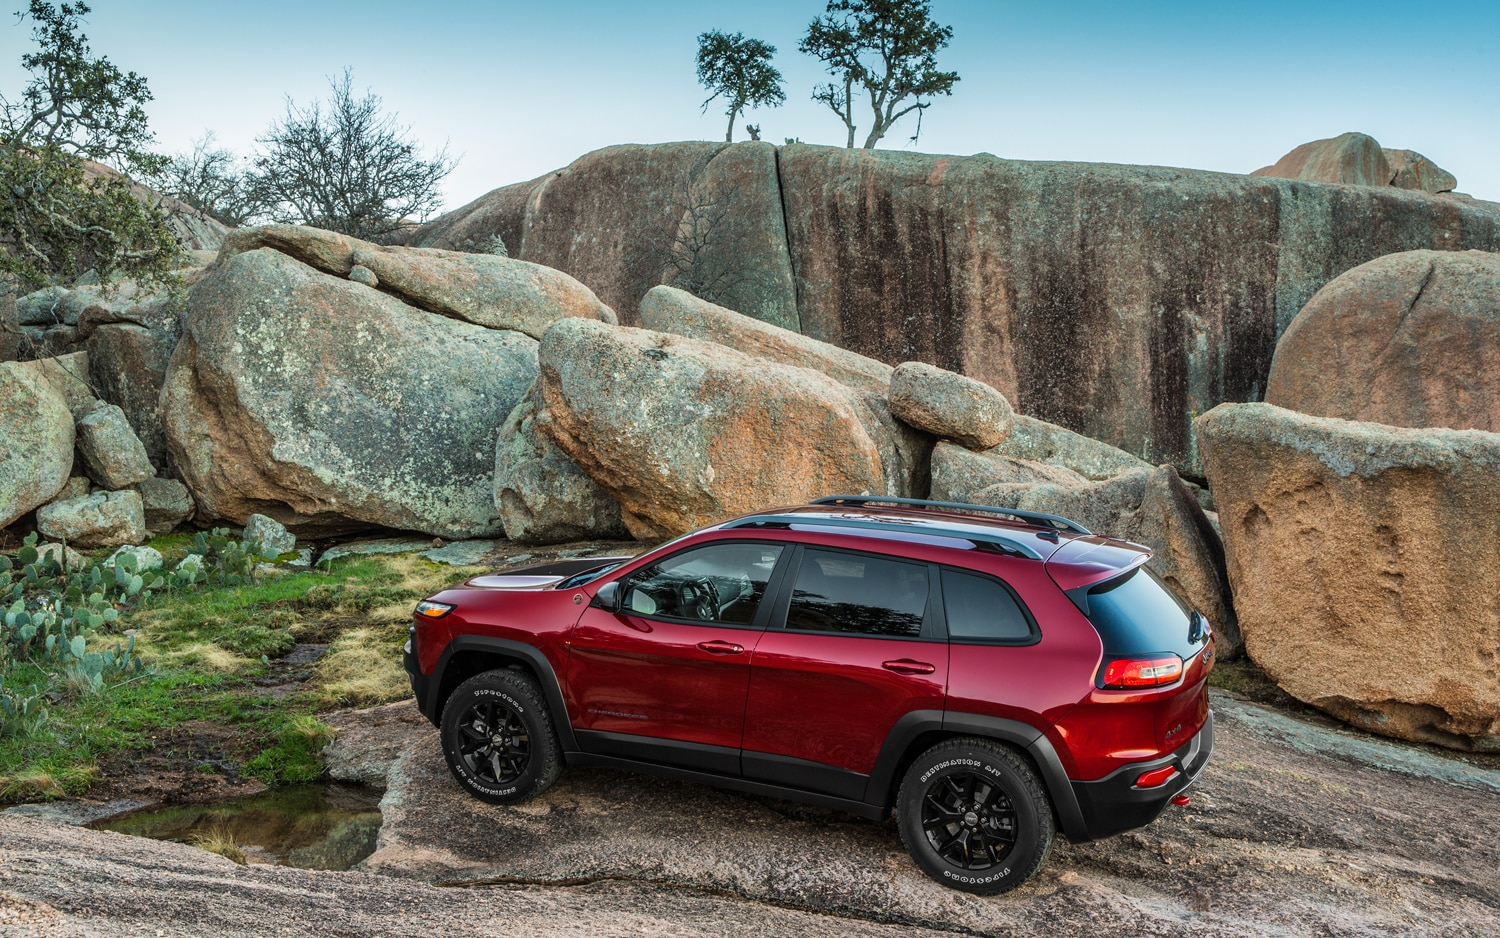 2014 Jeep Cherokee Trailhawk rear view 02